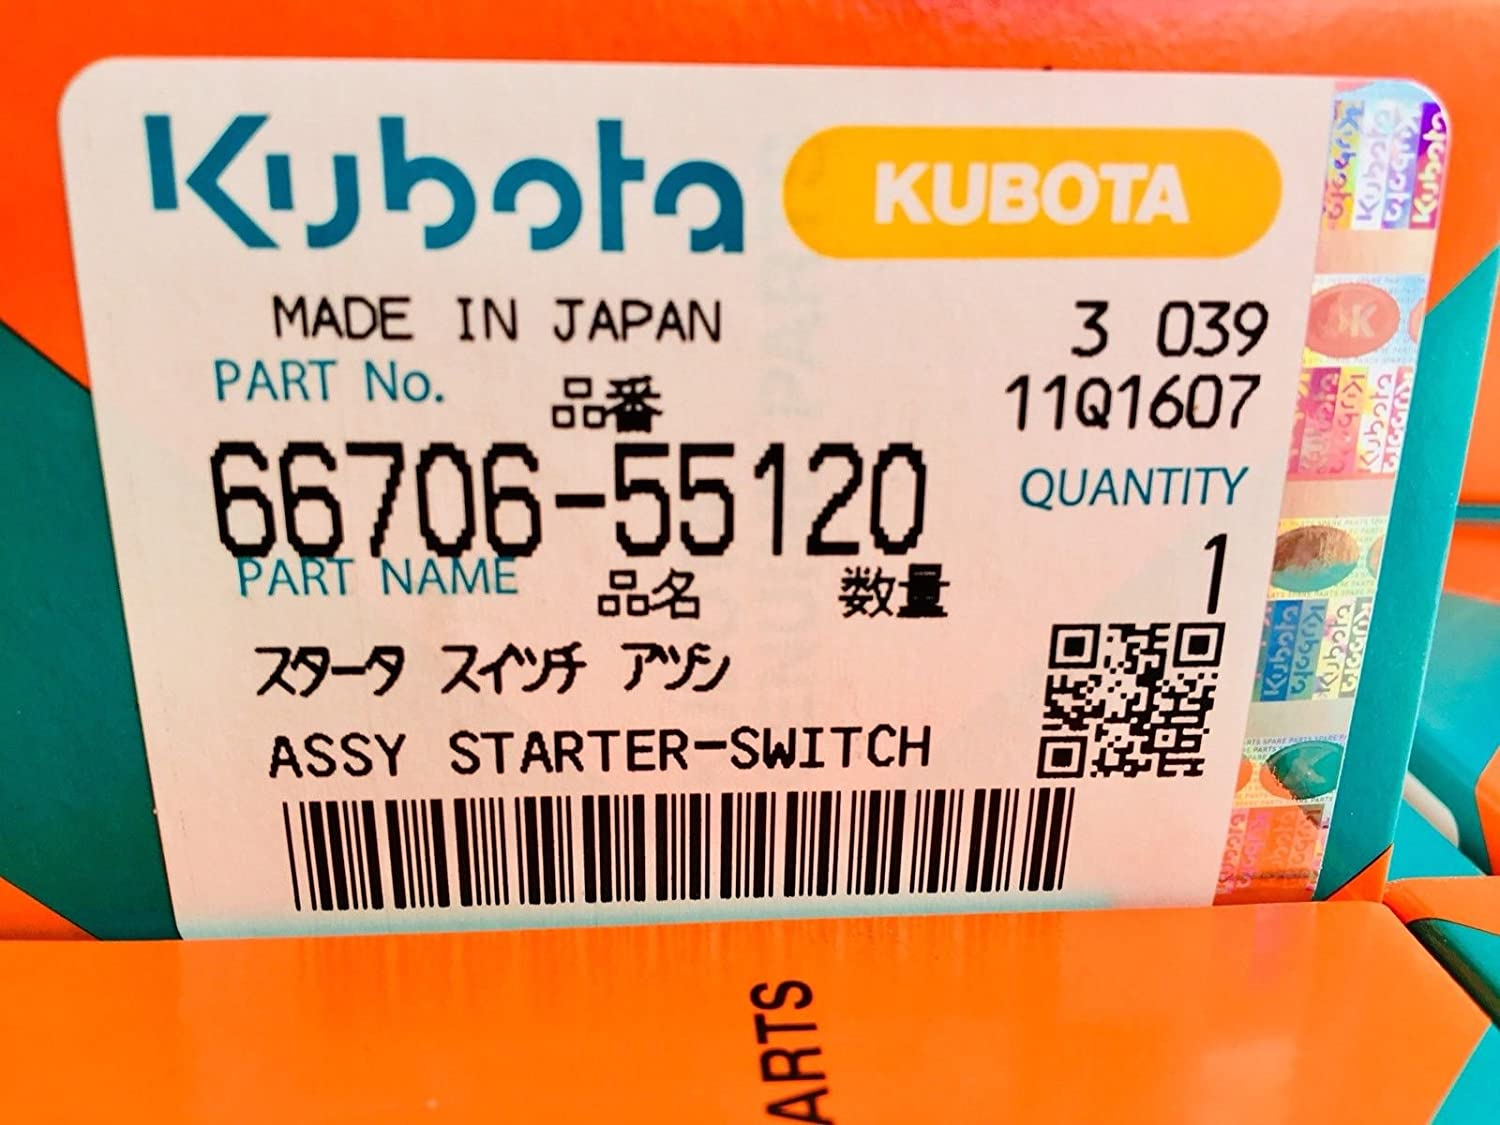 wiring diagram for kubota bx2200 free download best wiring library